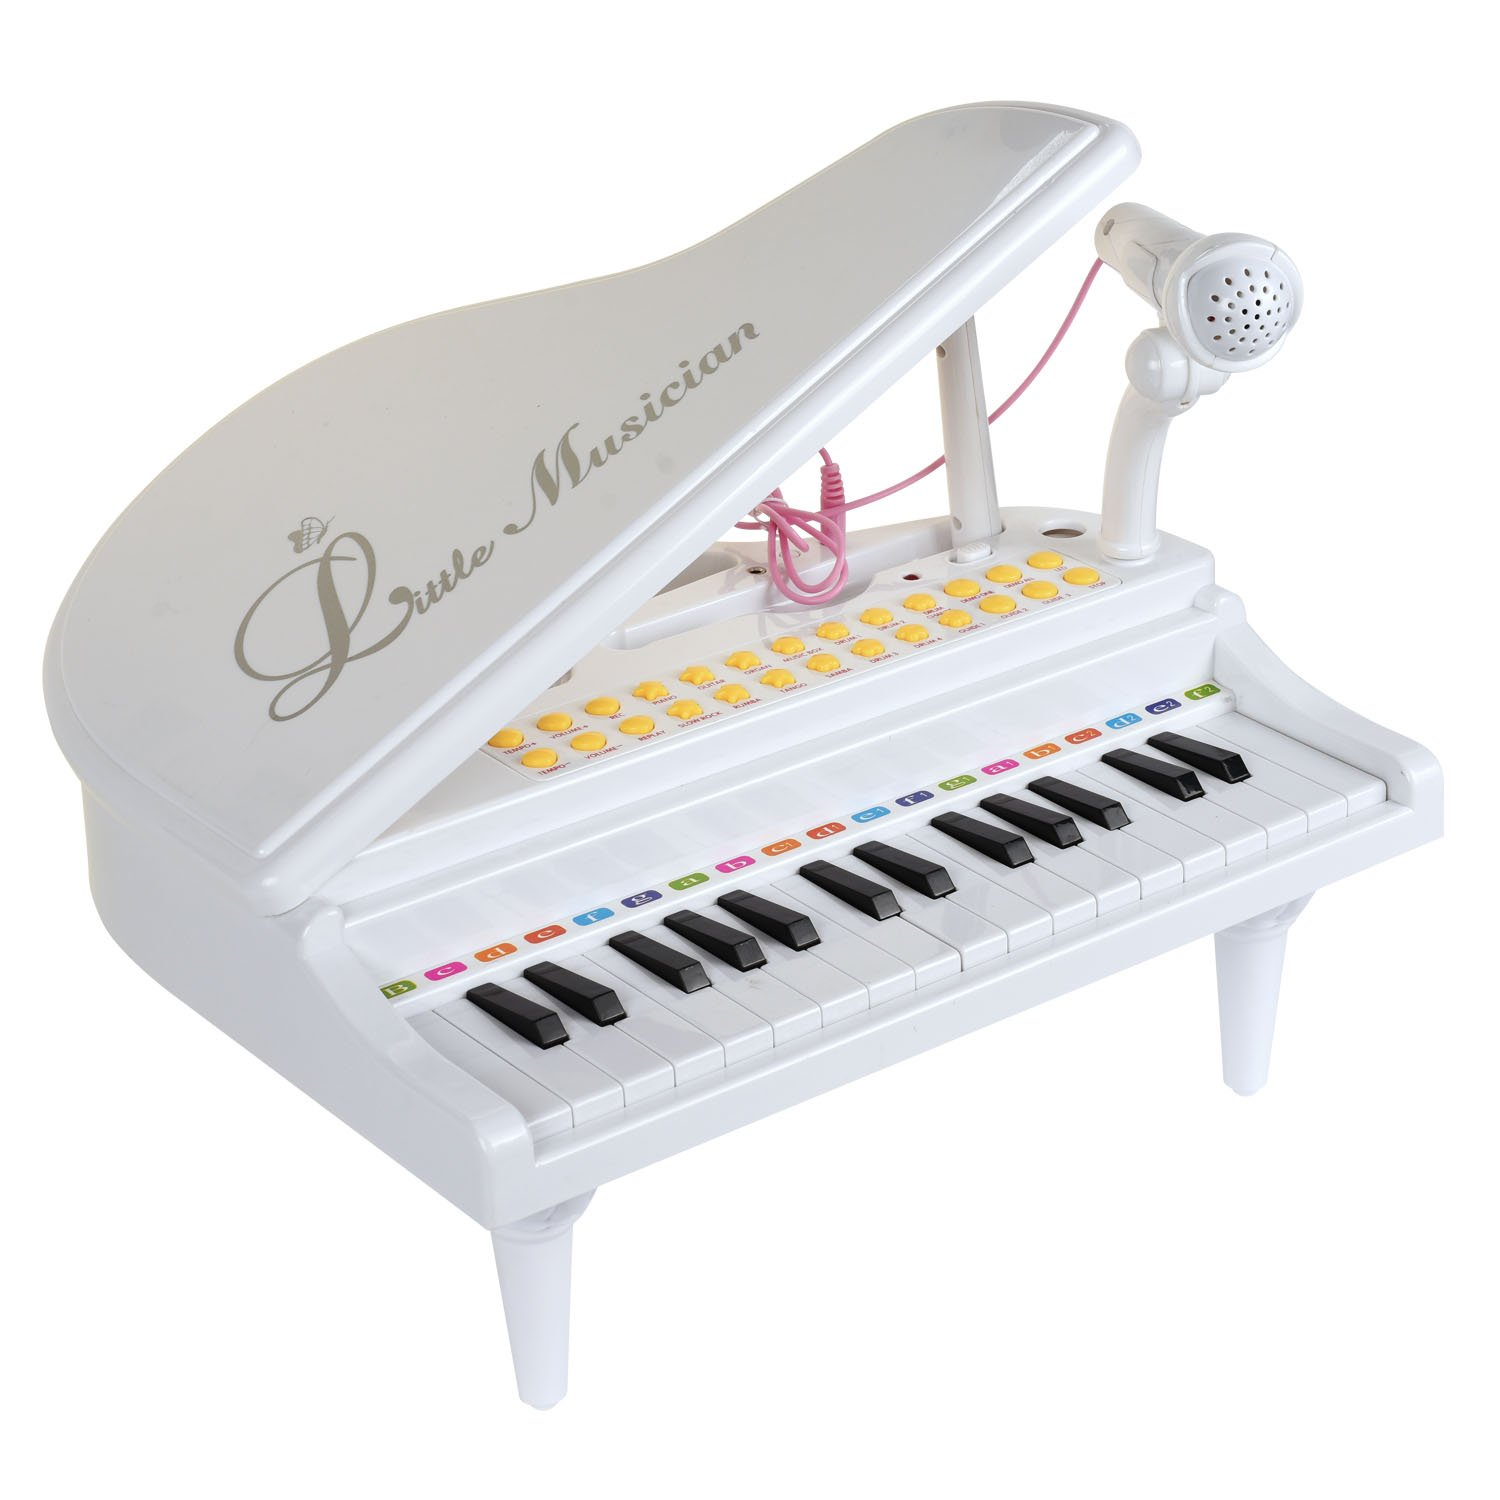 31 Key Small Toy Piano White with Microphone for Boys and Girls Baoli